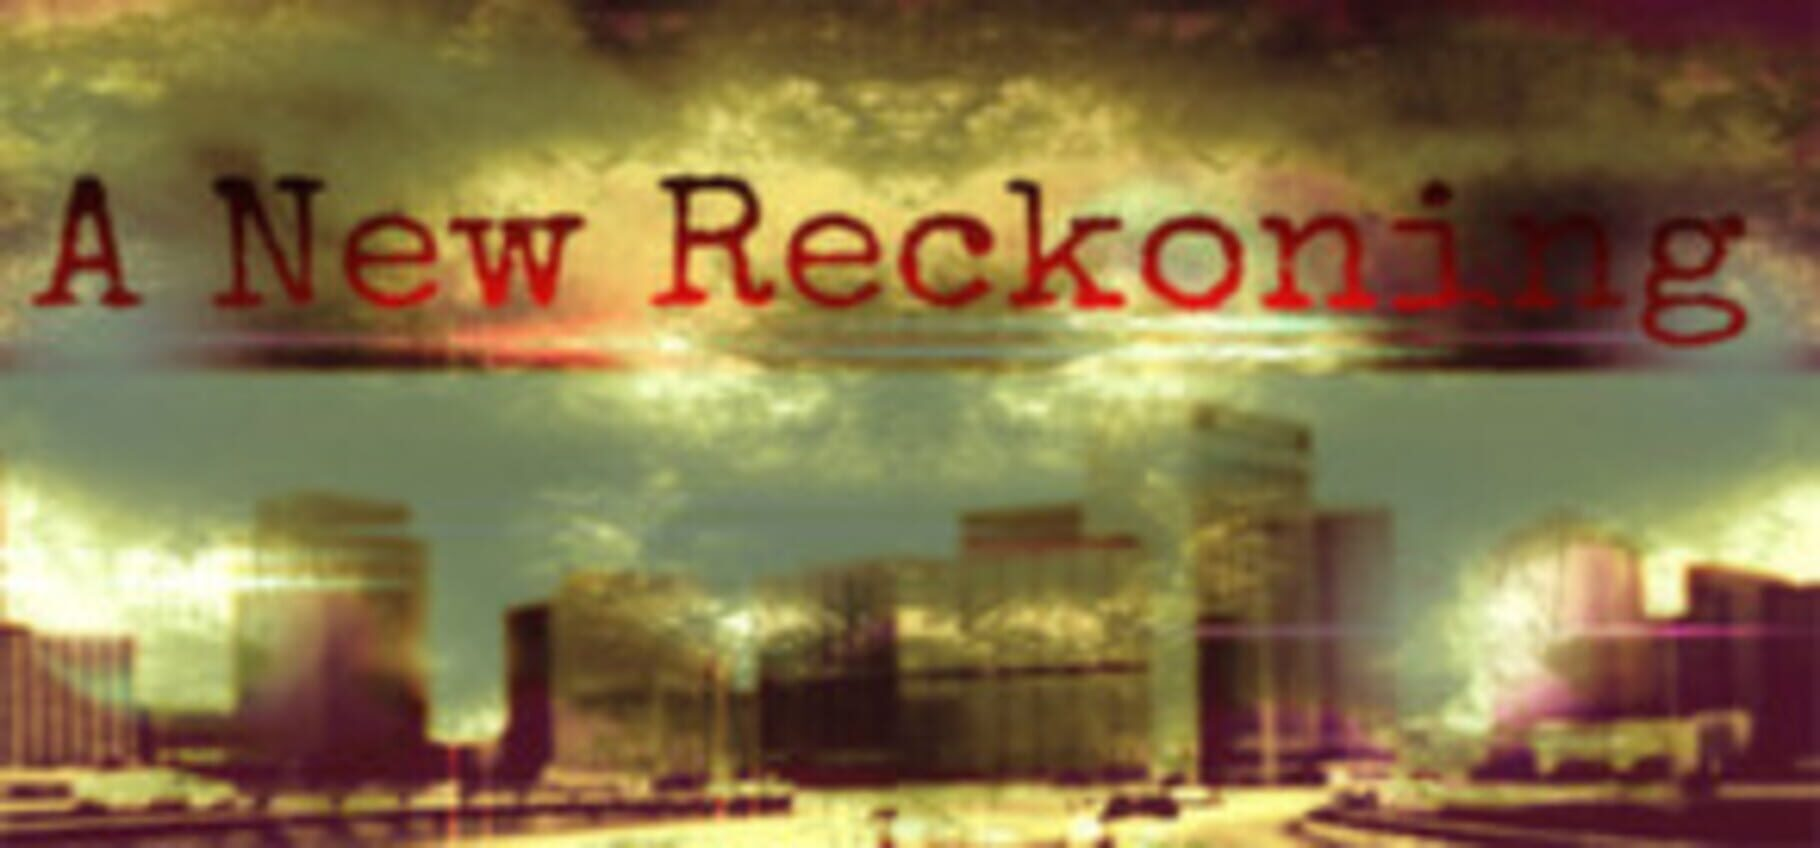 buy A New Reckoning cd key for all platform